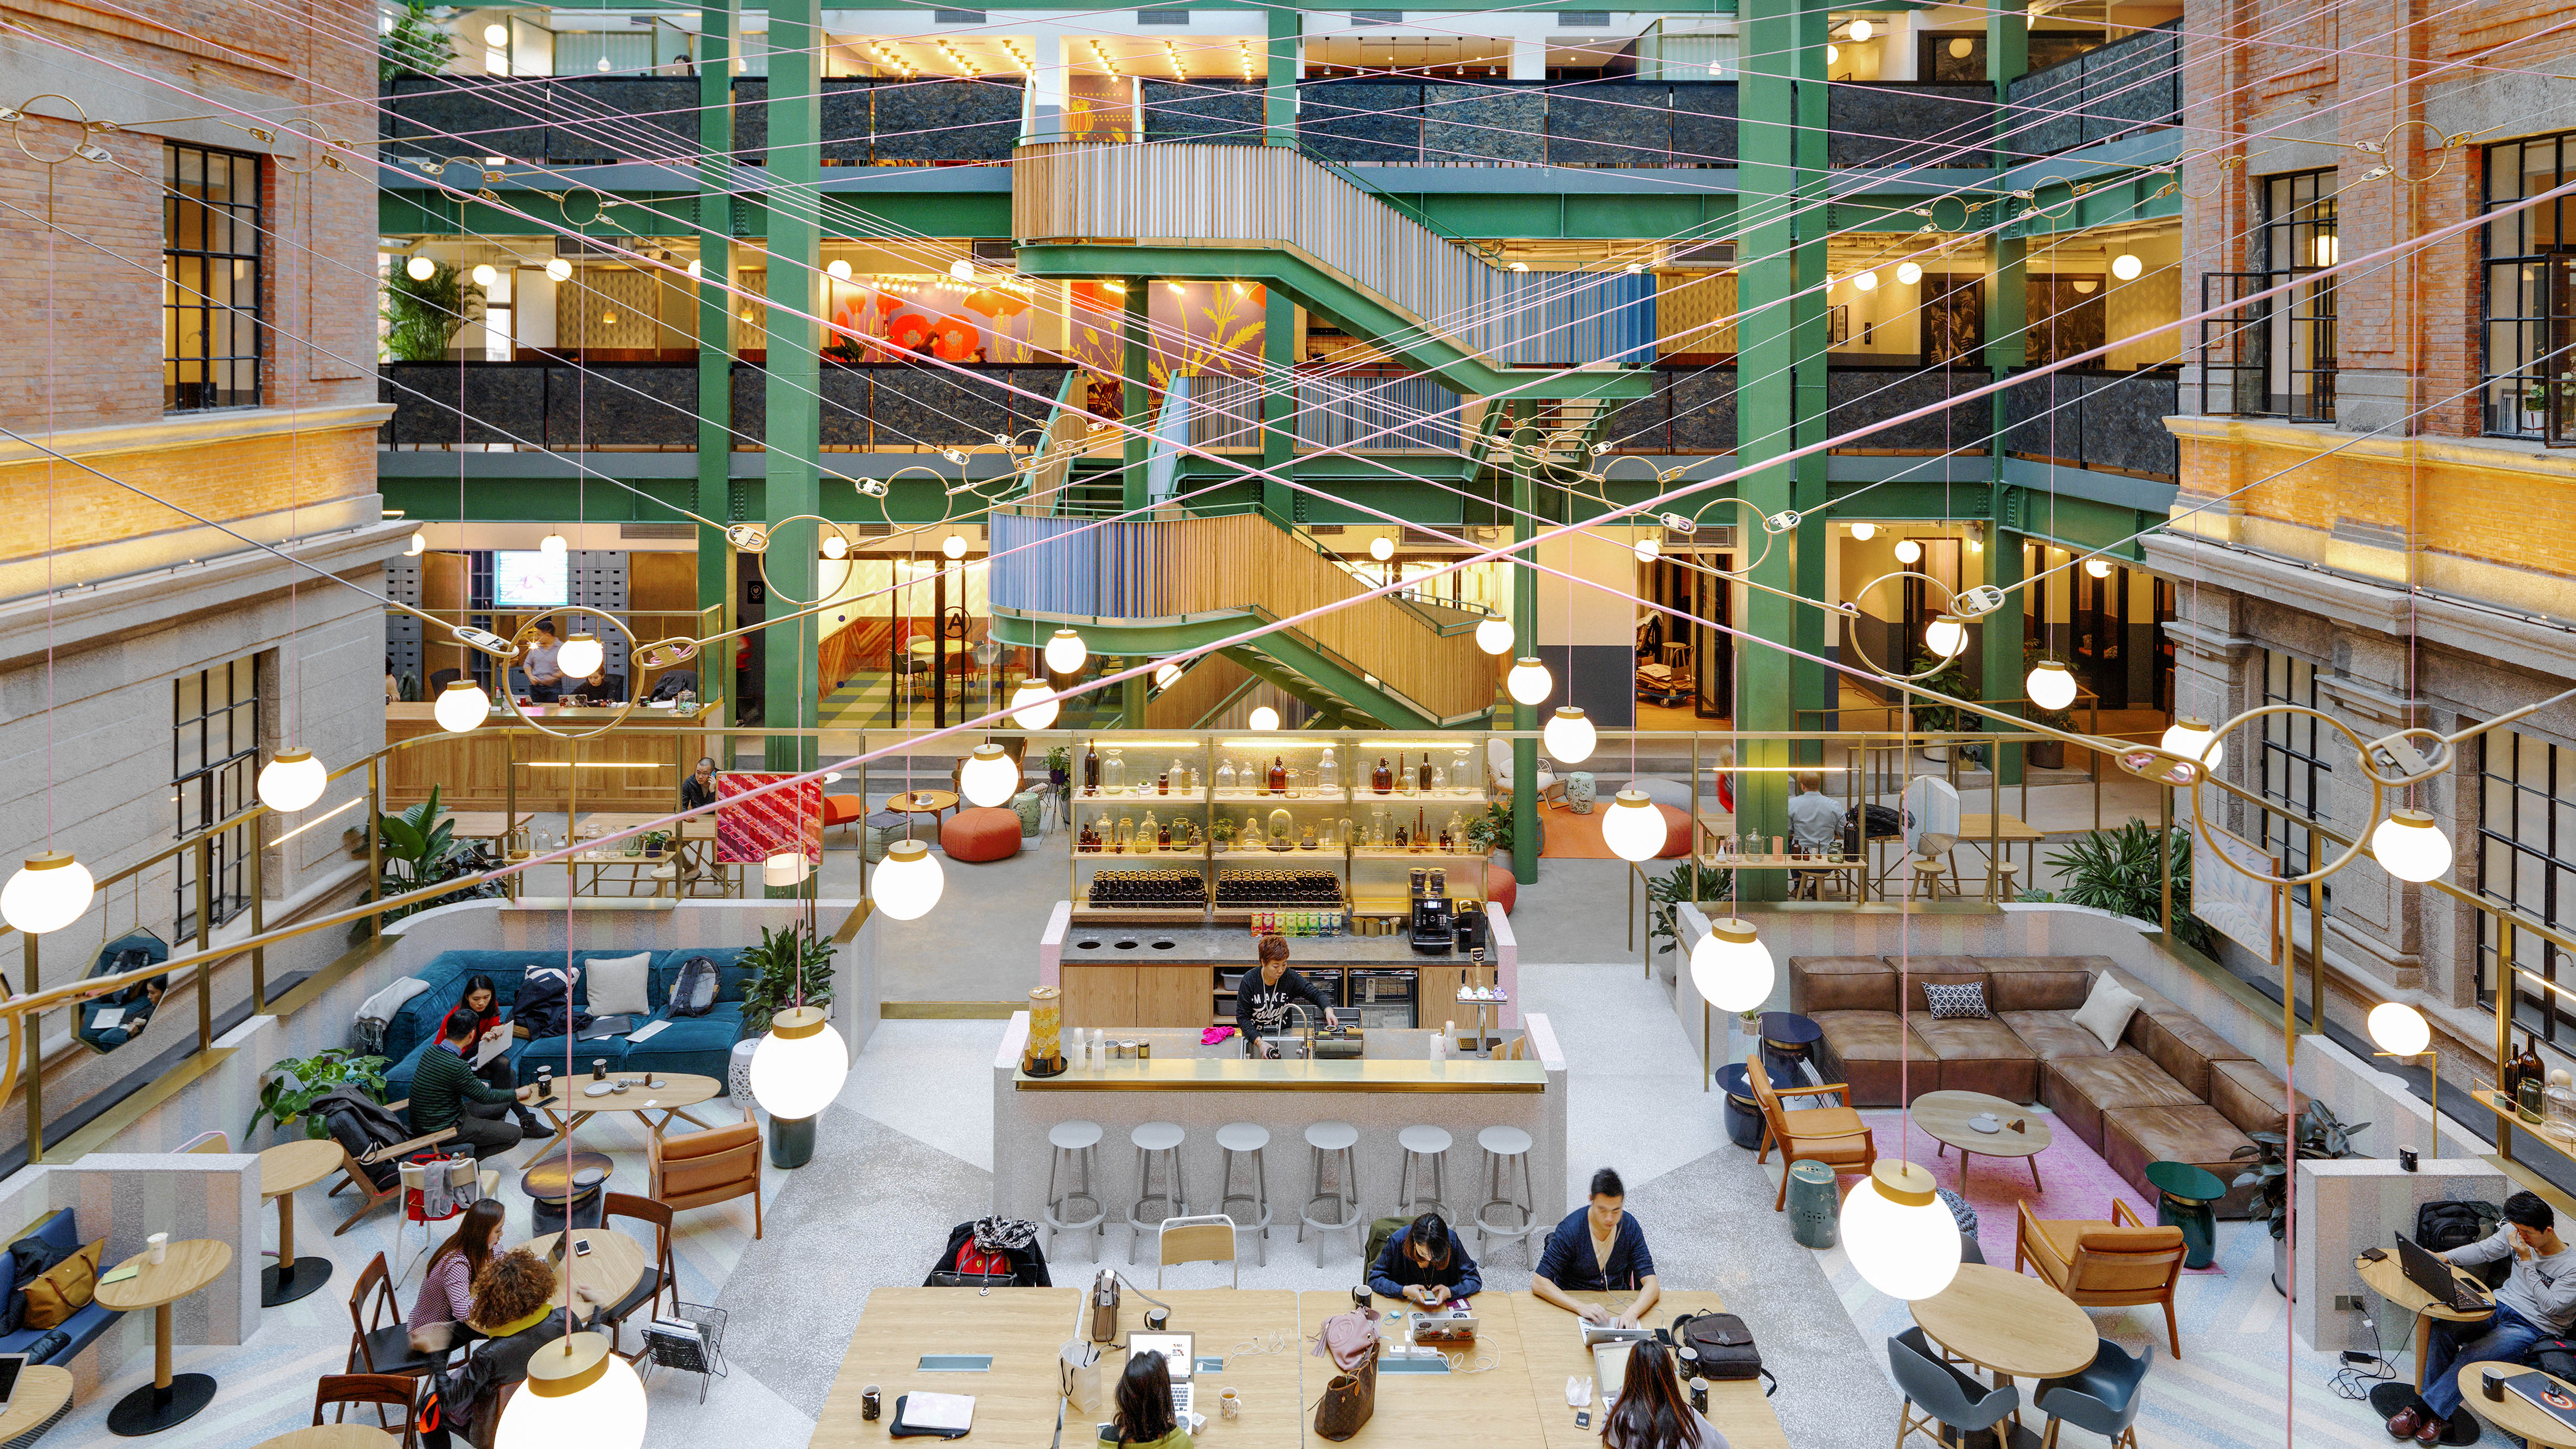 Design Interieur Job Wework Design Jobs Profile And Careers On Dezeen Jobs